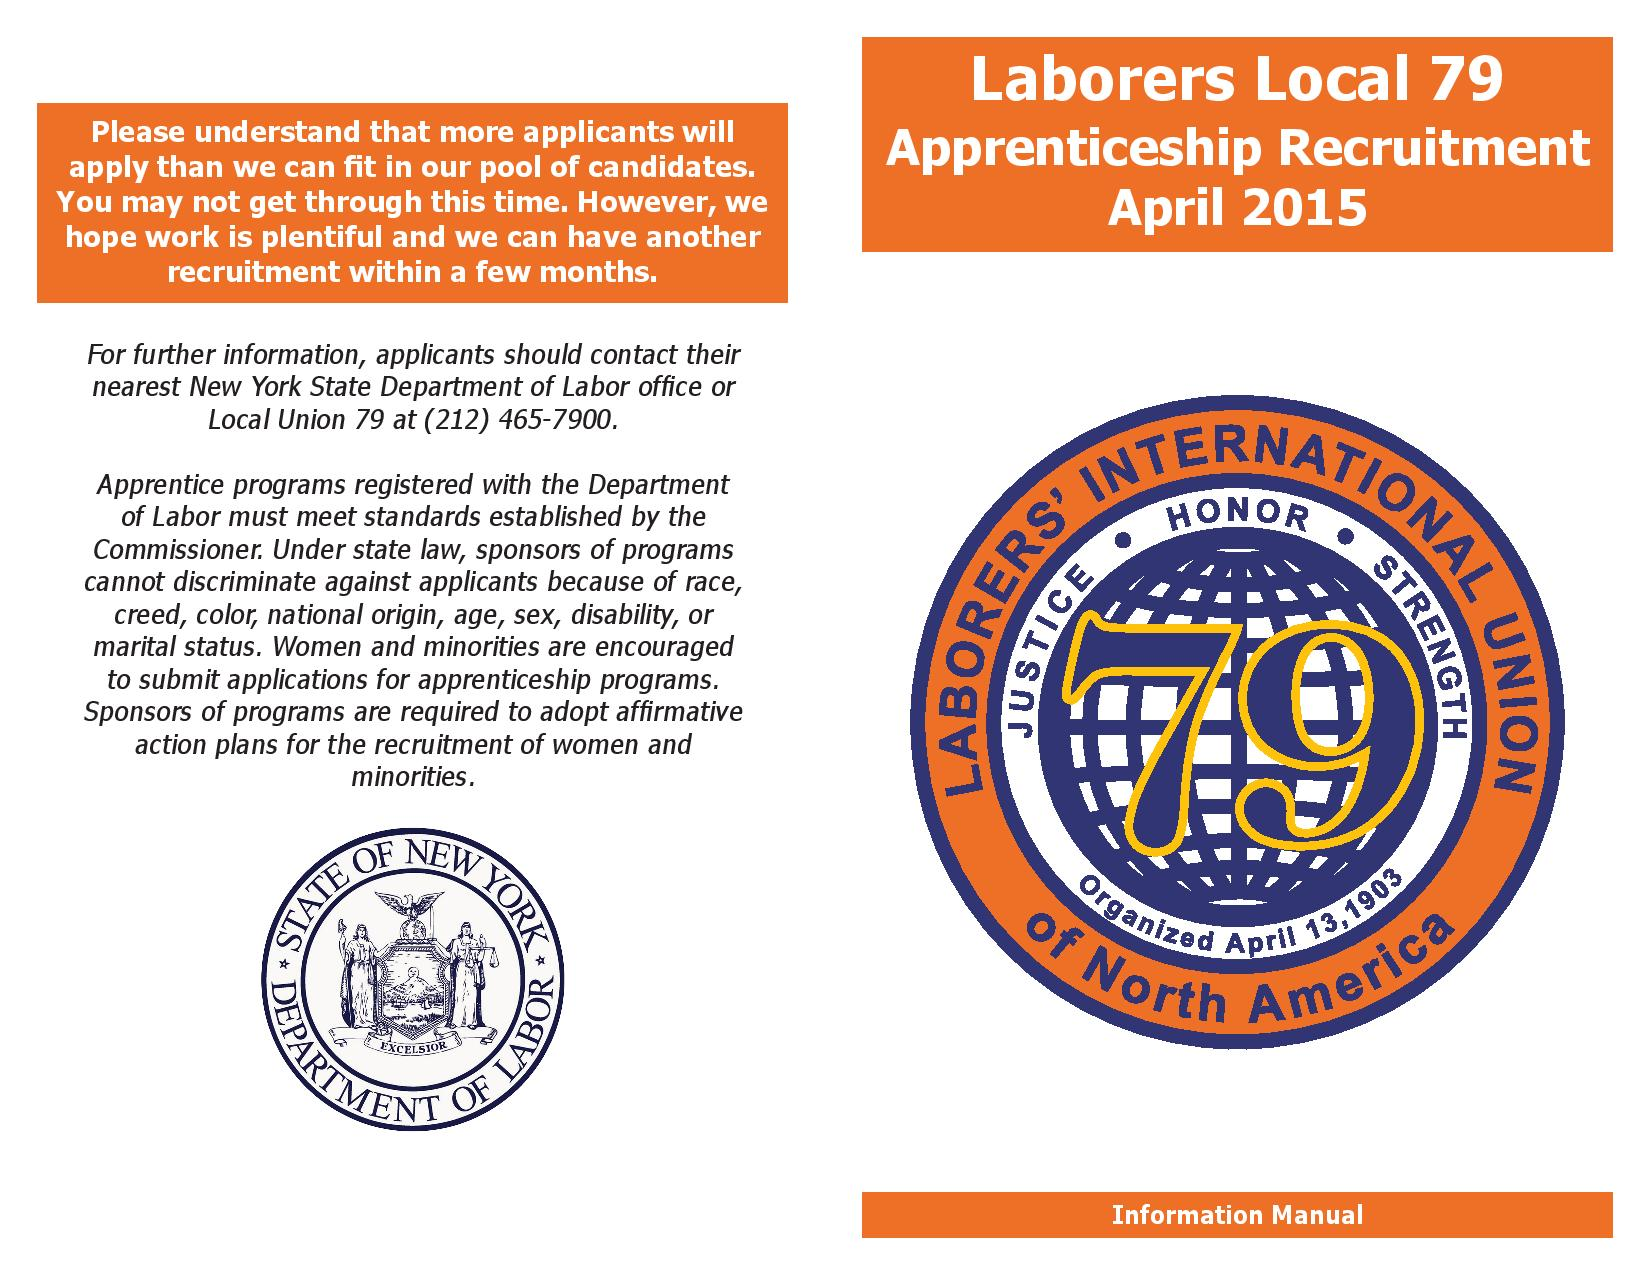 Laborers Local 79 Now Recruiting Apprentices | New York City